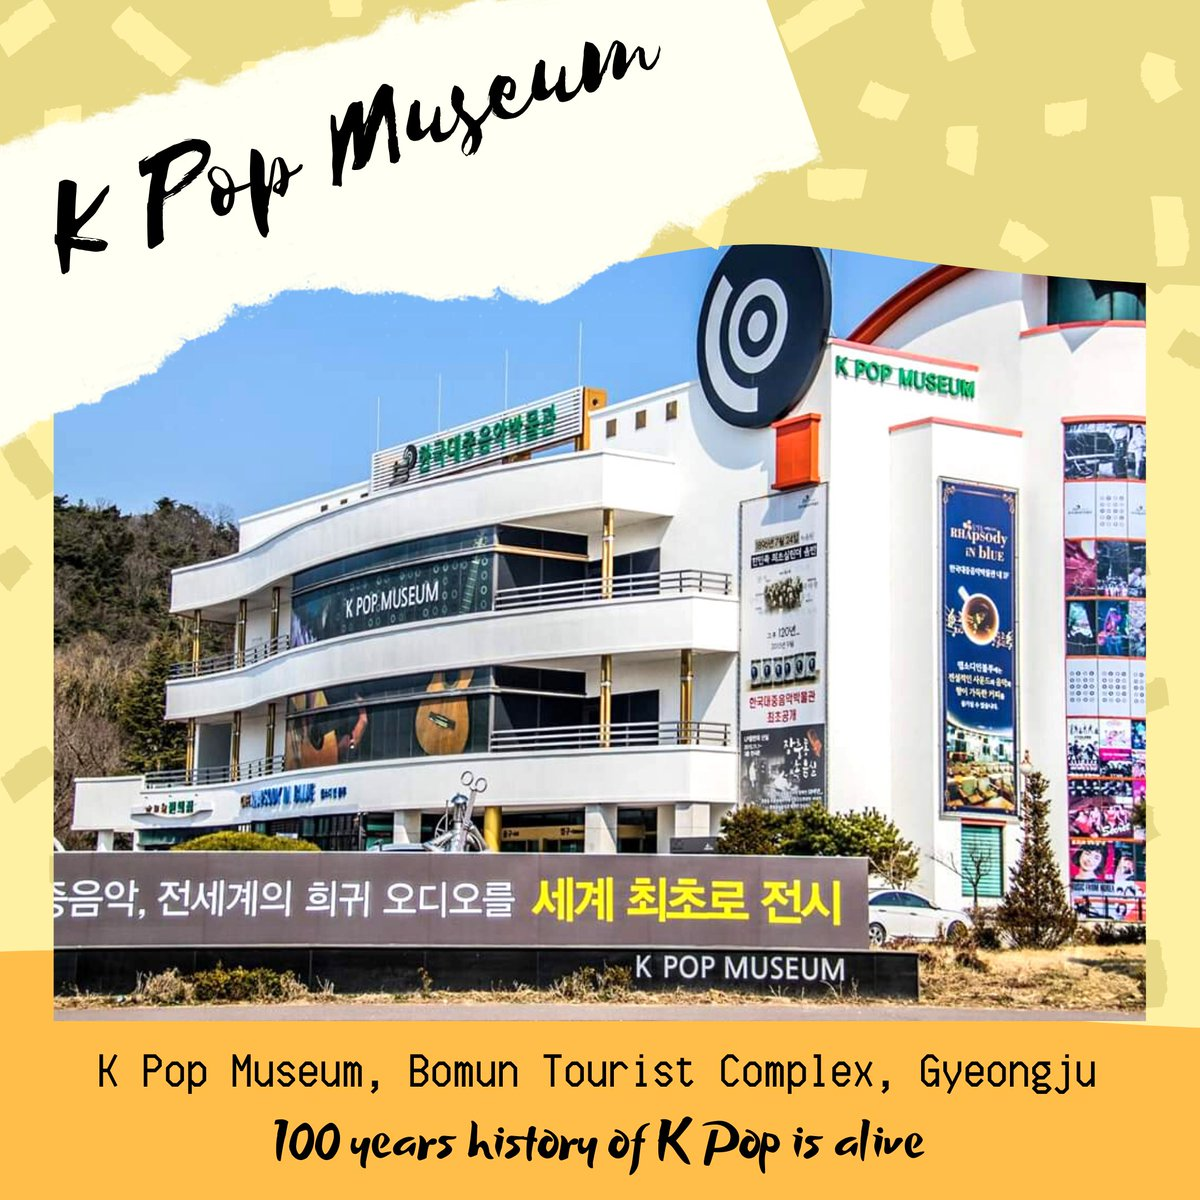 Gyeongju Kpop Museum is the best place for you to enjoy music and learn a lot about Korean music and discovering 100 years of K Pop Music  #kpopmuseum #gyeongju #gyeongsangbukdo #kpop #museum #korea #visitkorea #explorekorea #koreanculture #koreanmusic #bts #nuest #IU #bigbangpic.twitter.com/wRoQMexftm